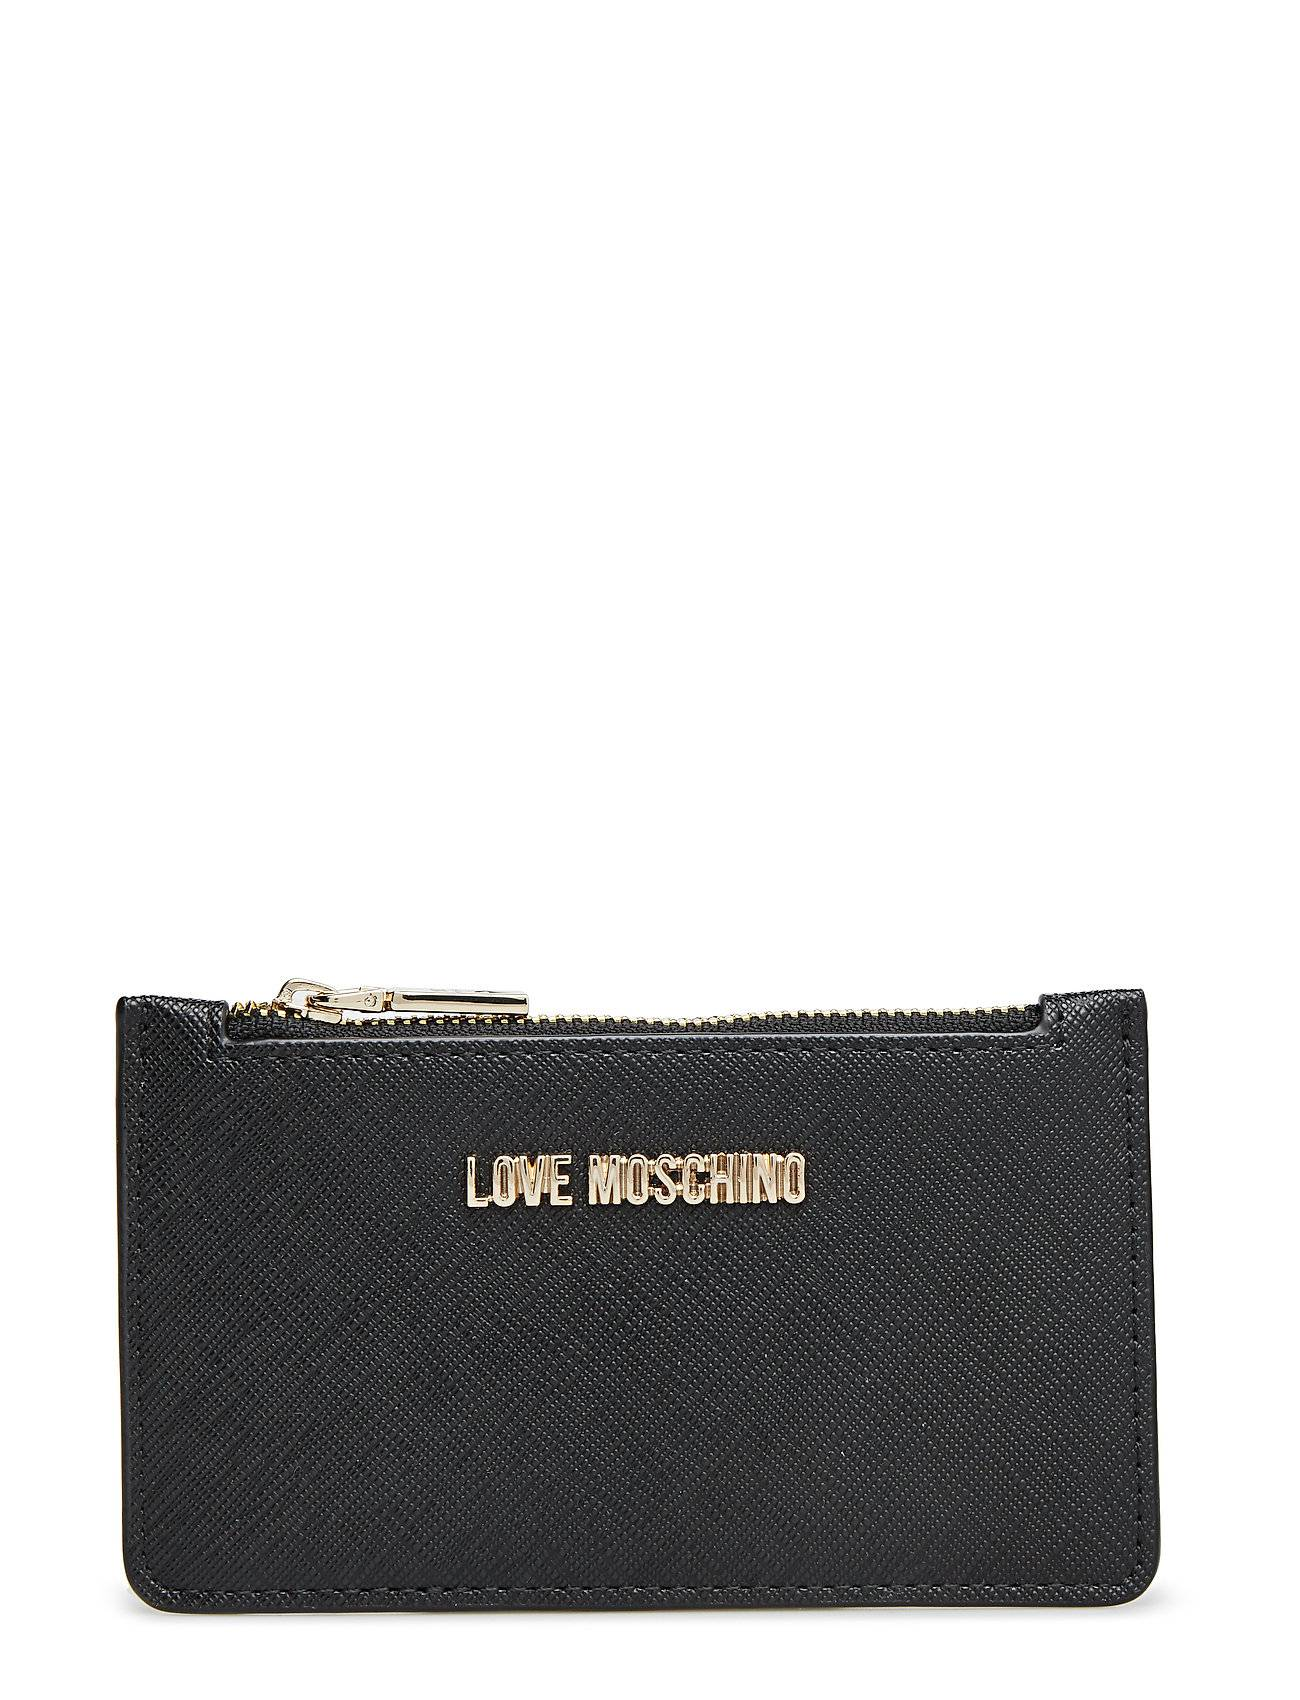 Love Moschino Bags Love Moschino Wallet